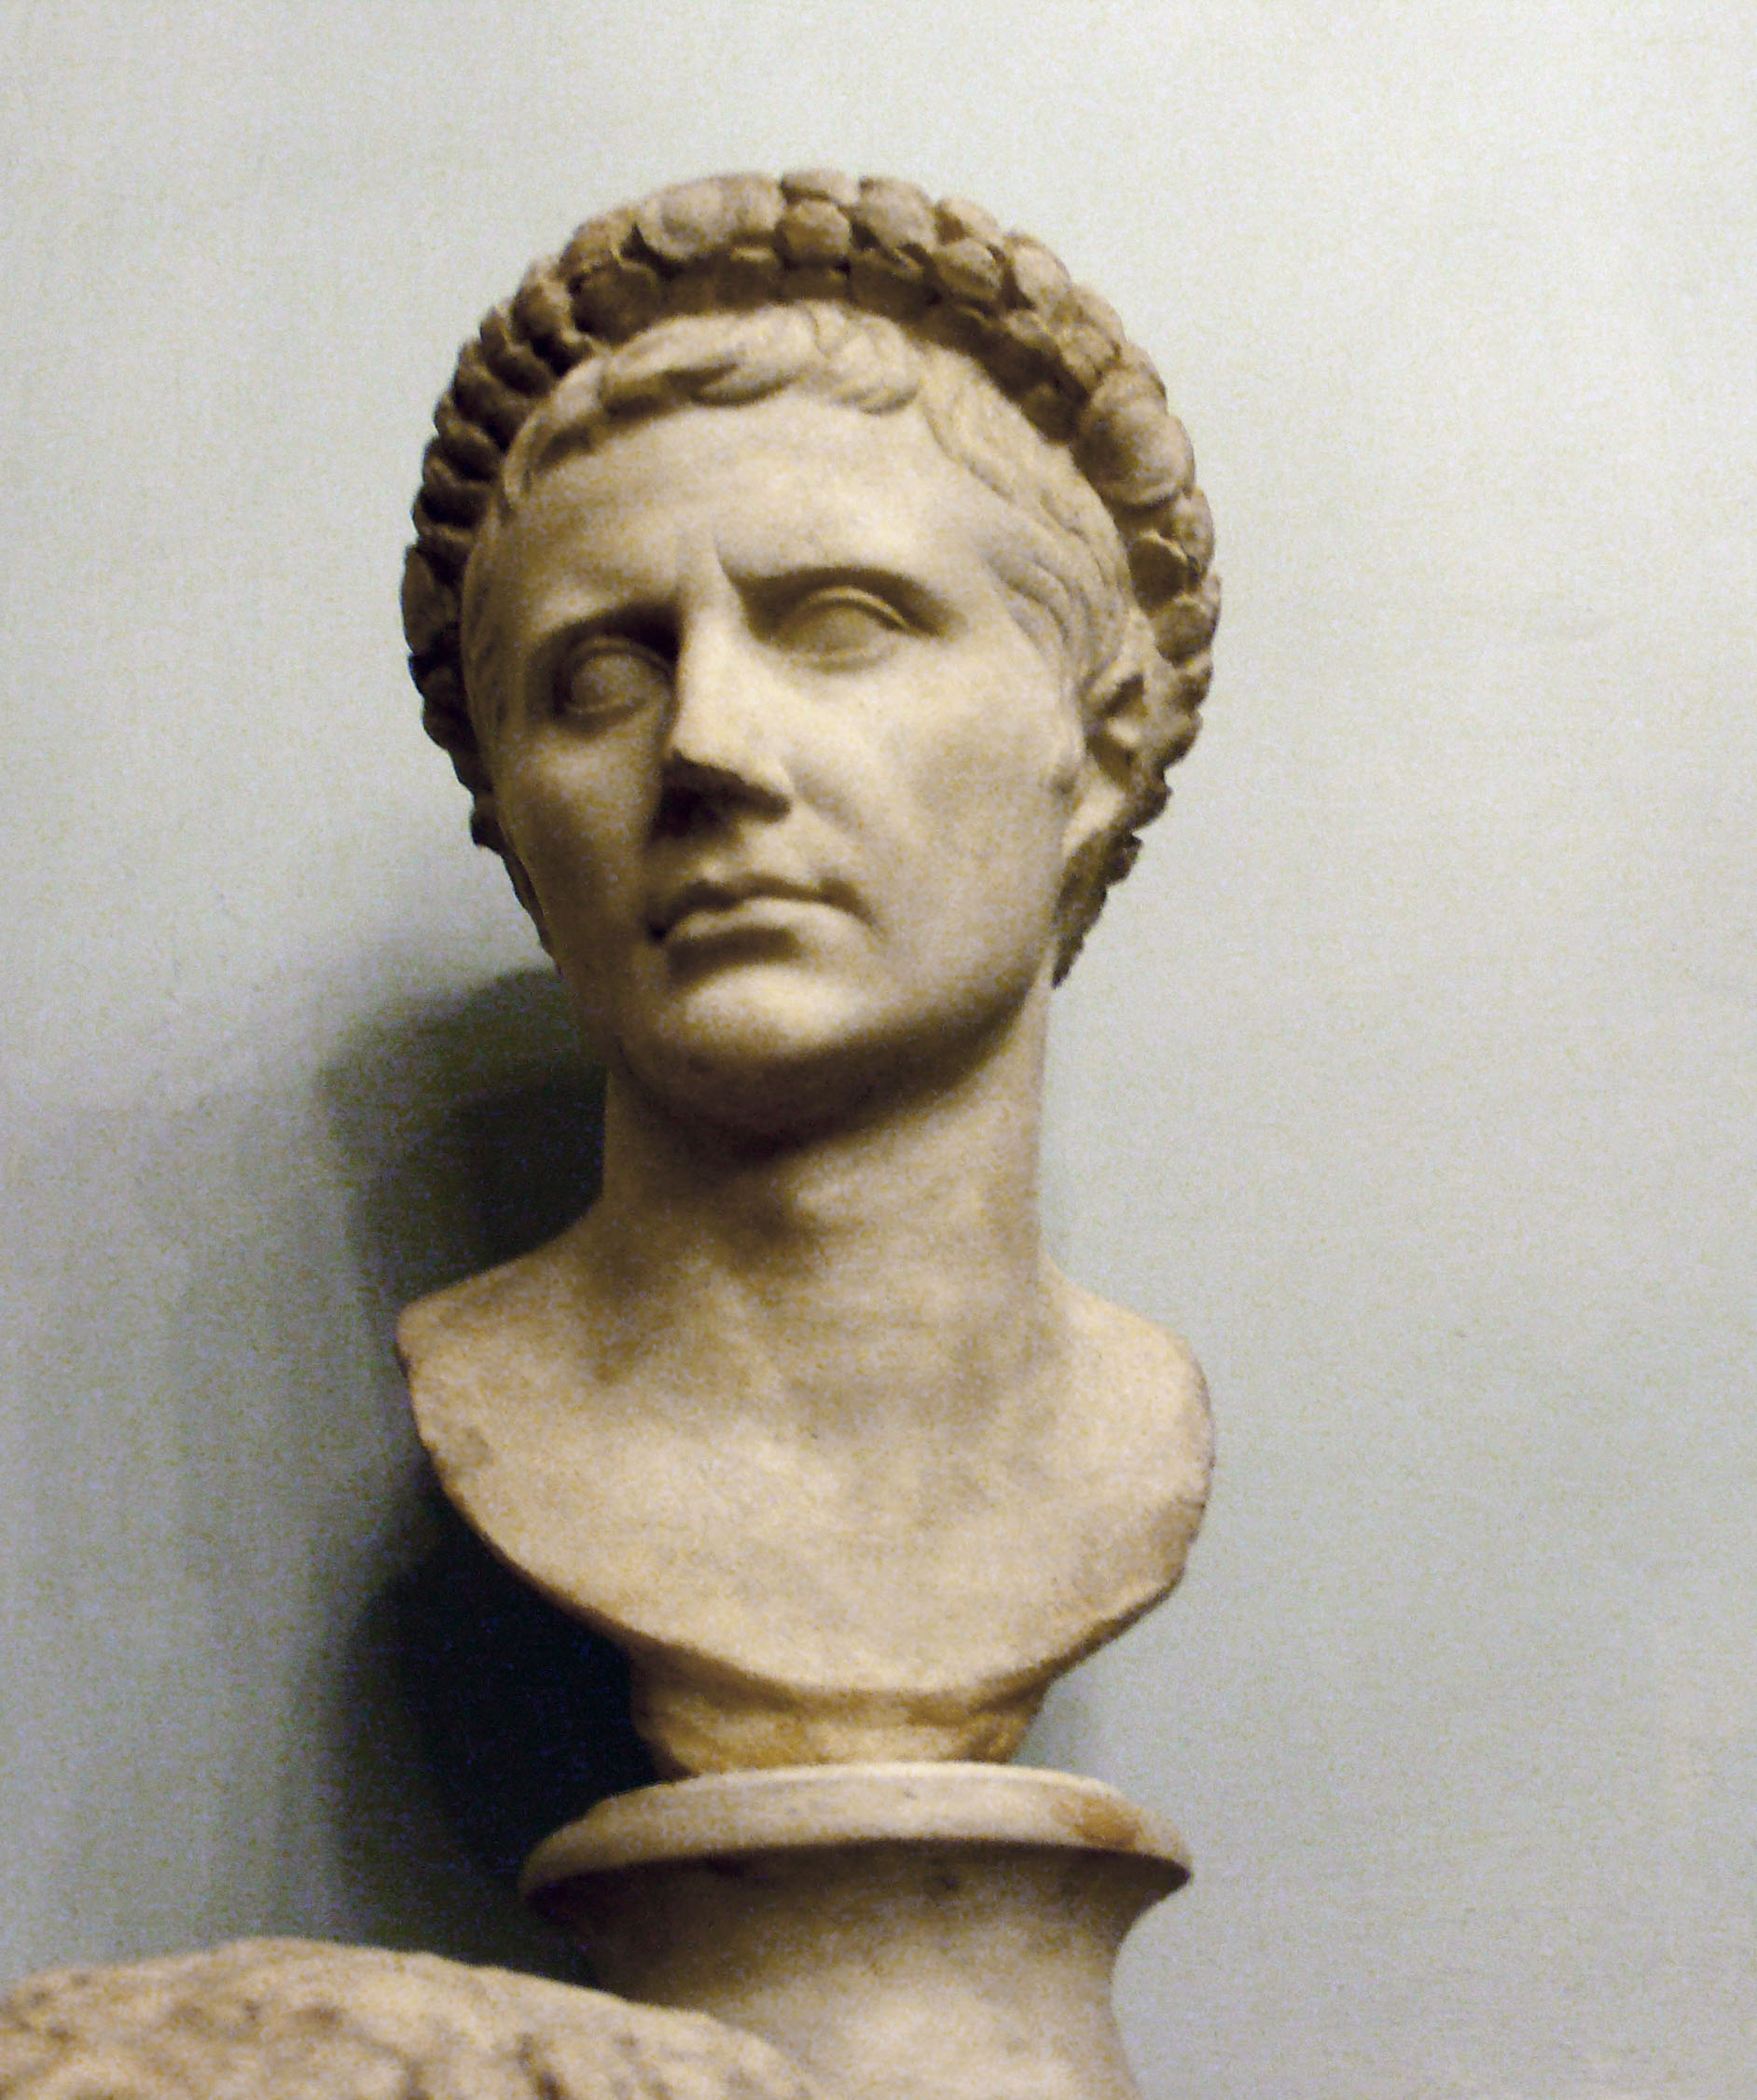 life of augustus caesar as the first roman emperor Caesar augustus, also known as octavian, was the first roman emperor after the assassination of julius caesar in 43 bc augustus was caesar's grand nephew who.